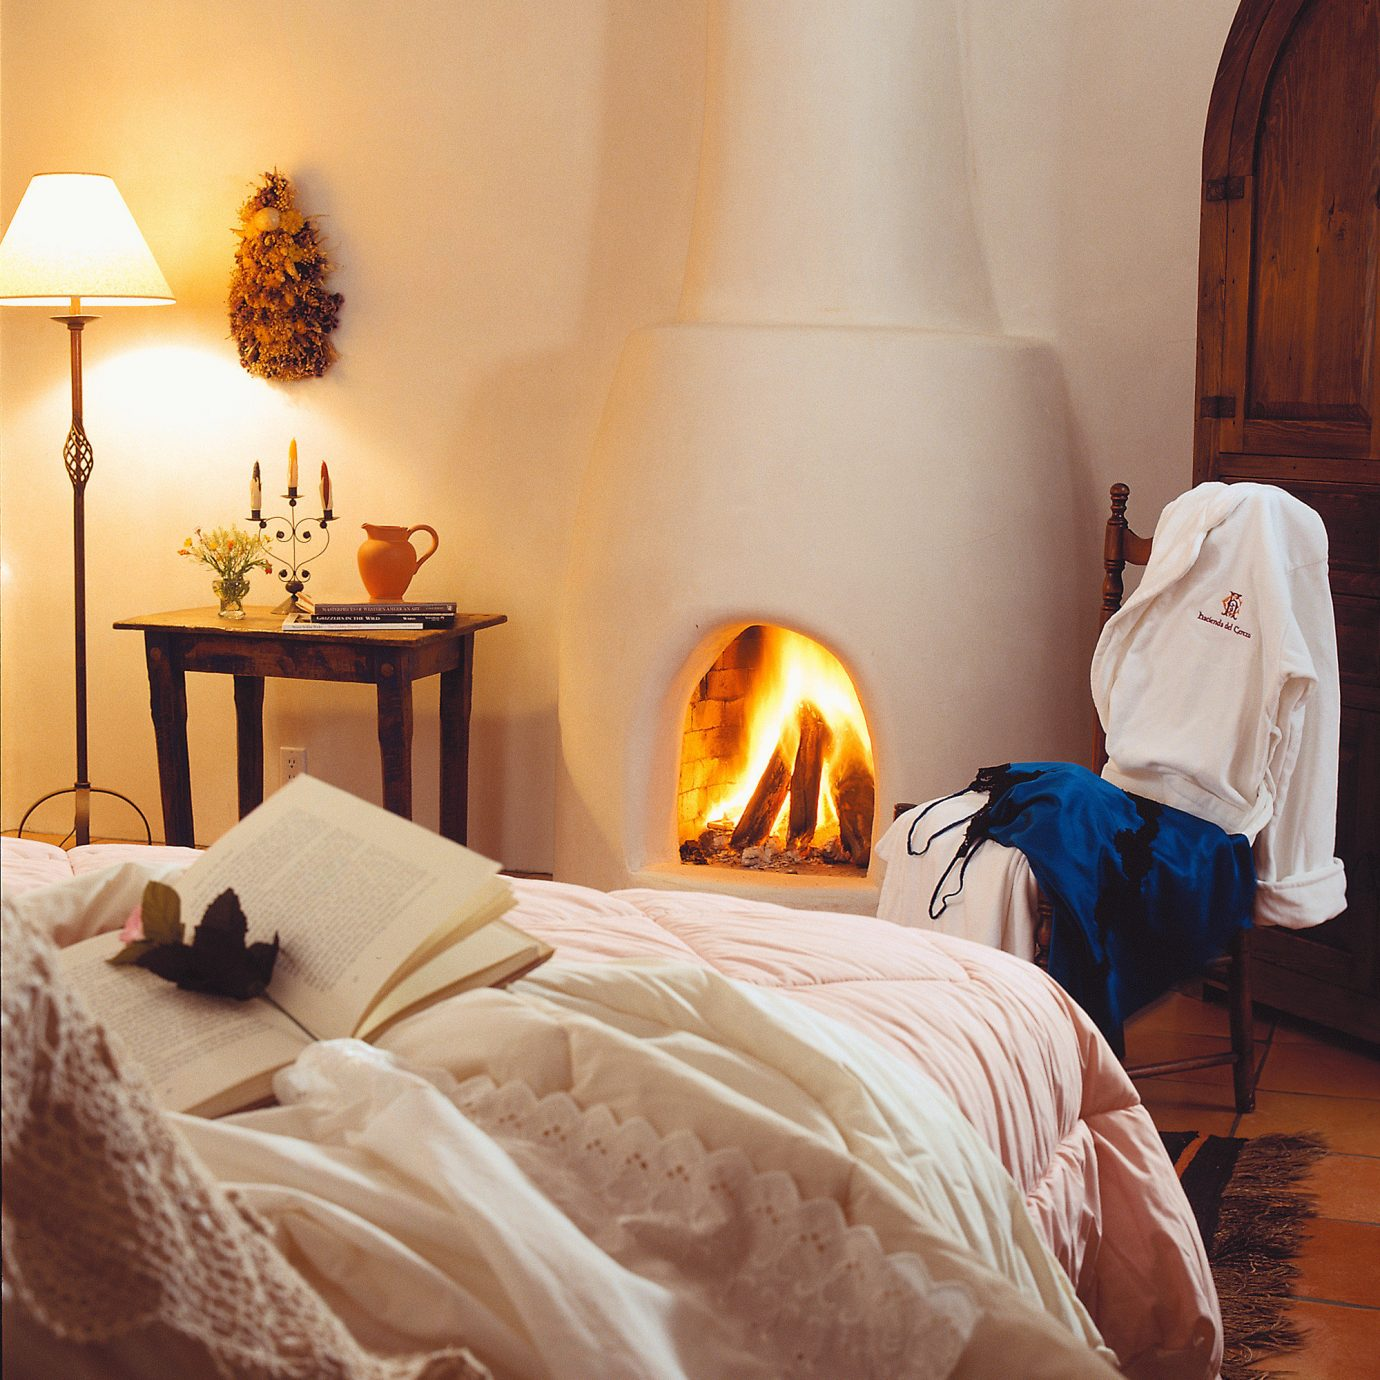 All-inclusive Bedroom Country Cultural Fireplace Mountains Romantic cottage bed sheet Suite